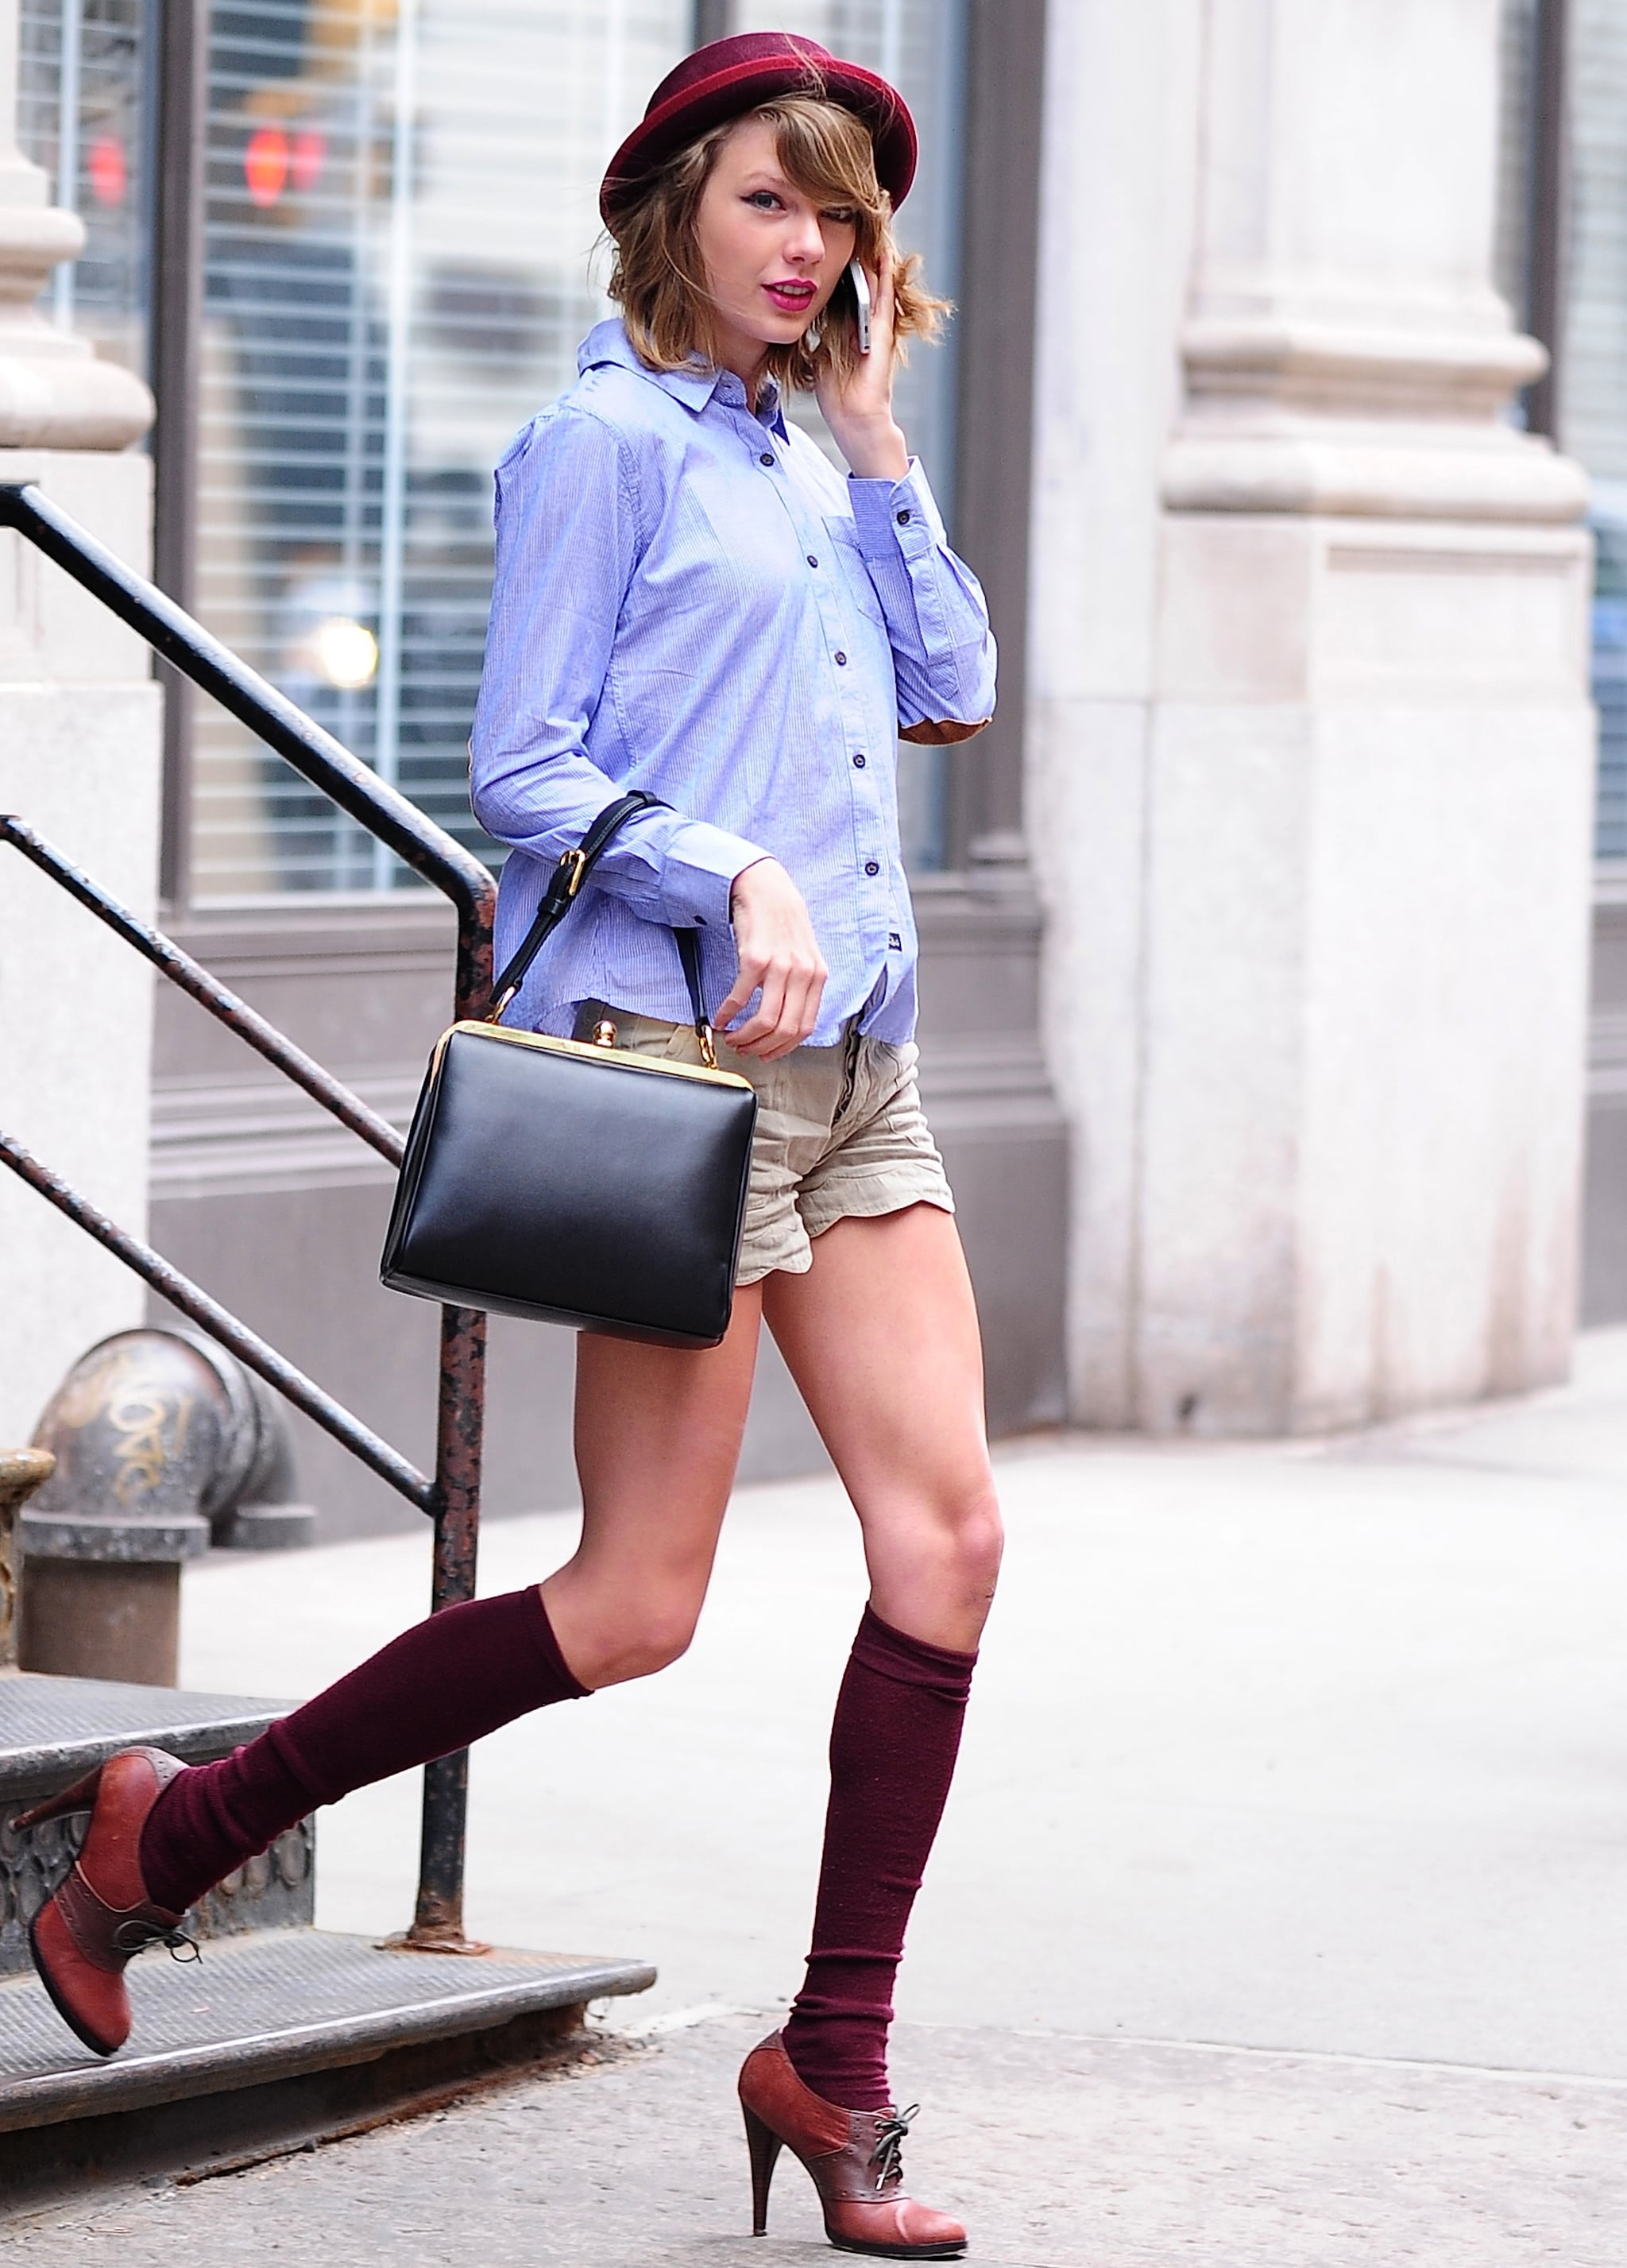 Matchy Matchy A Guide To Wearing Thigh High Socks As Demonstrated By Taylor Swift Popsugar